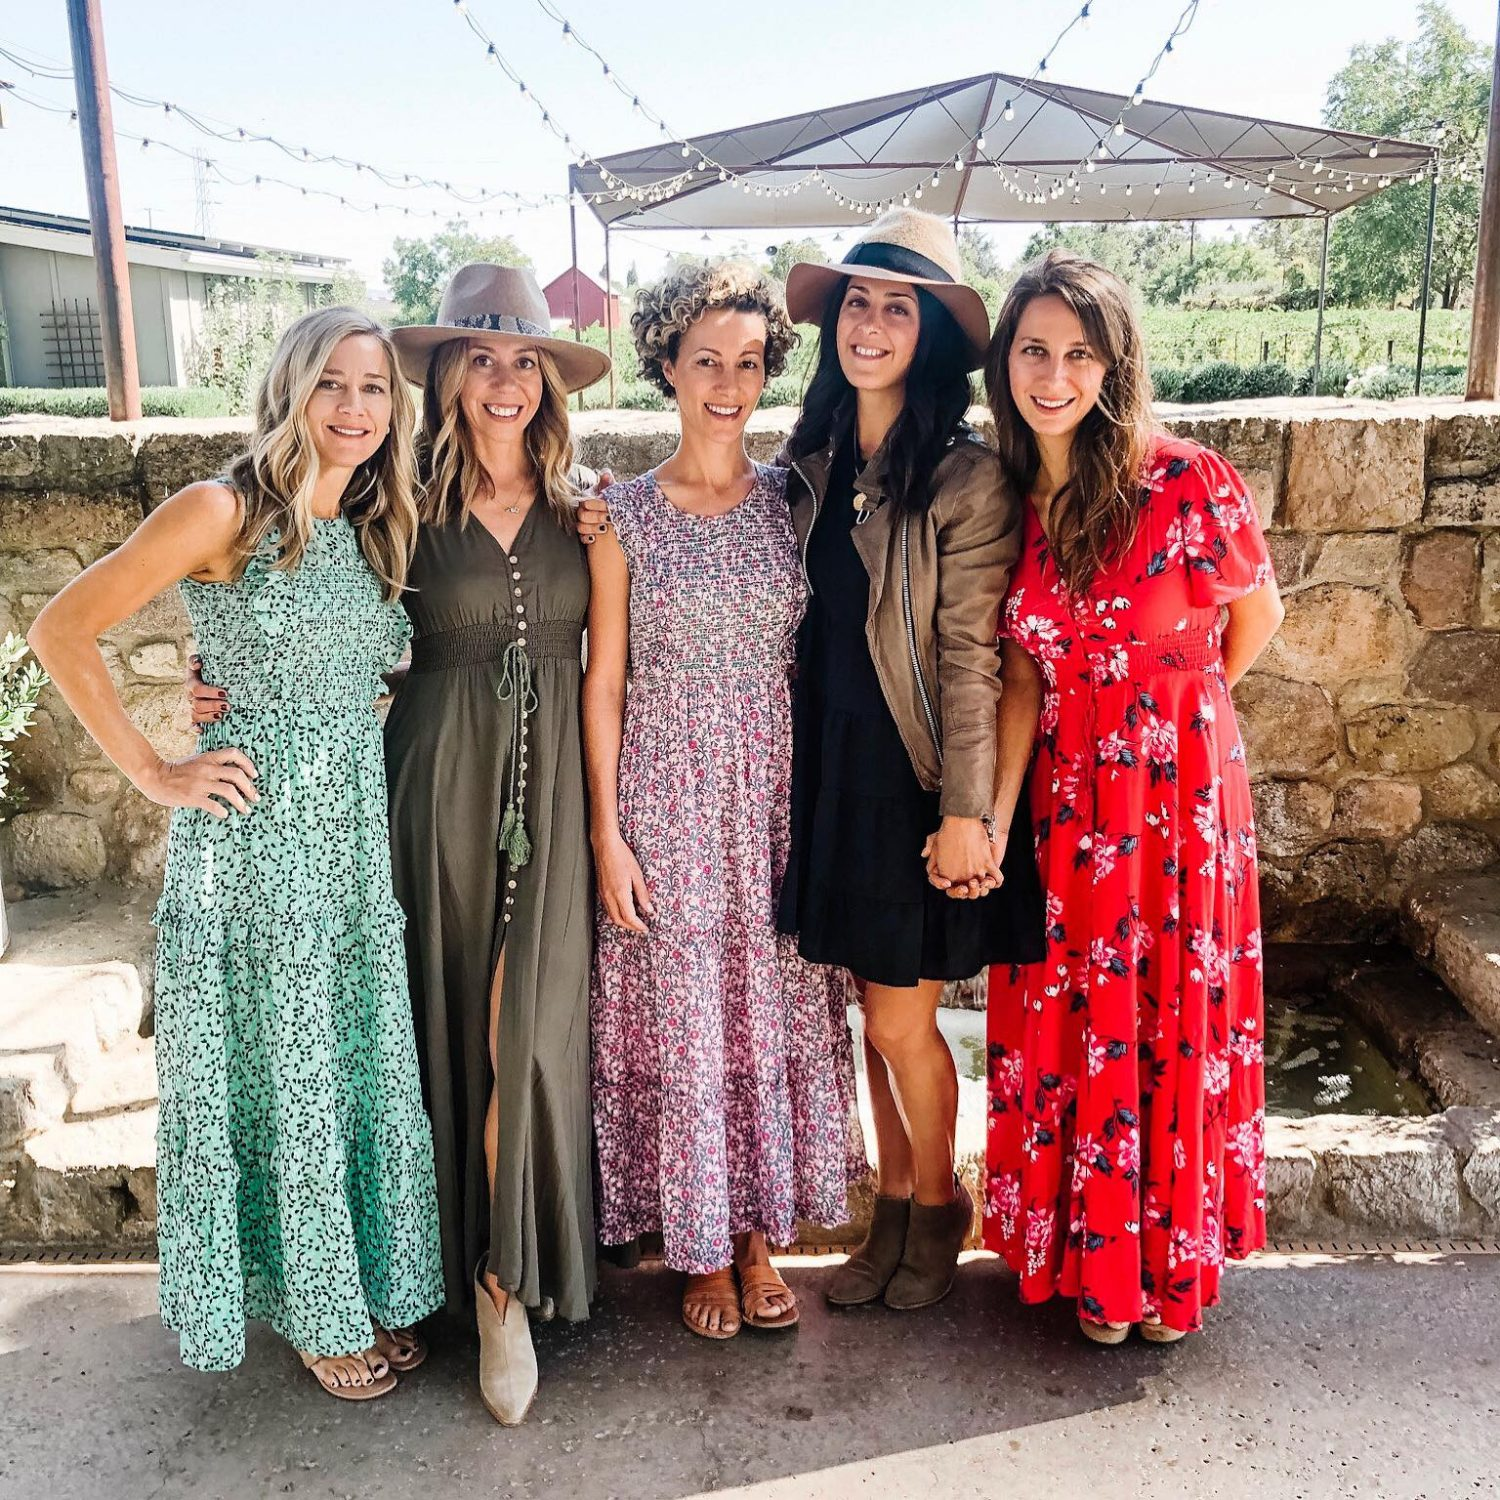 The motherchic wearing maxi dress in wine country